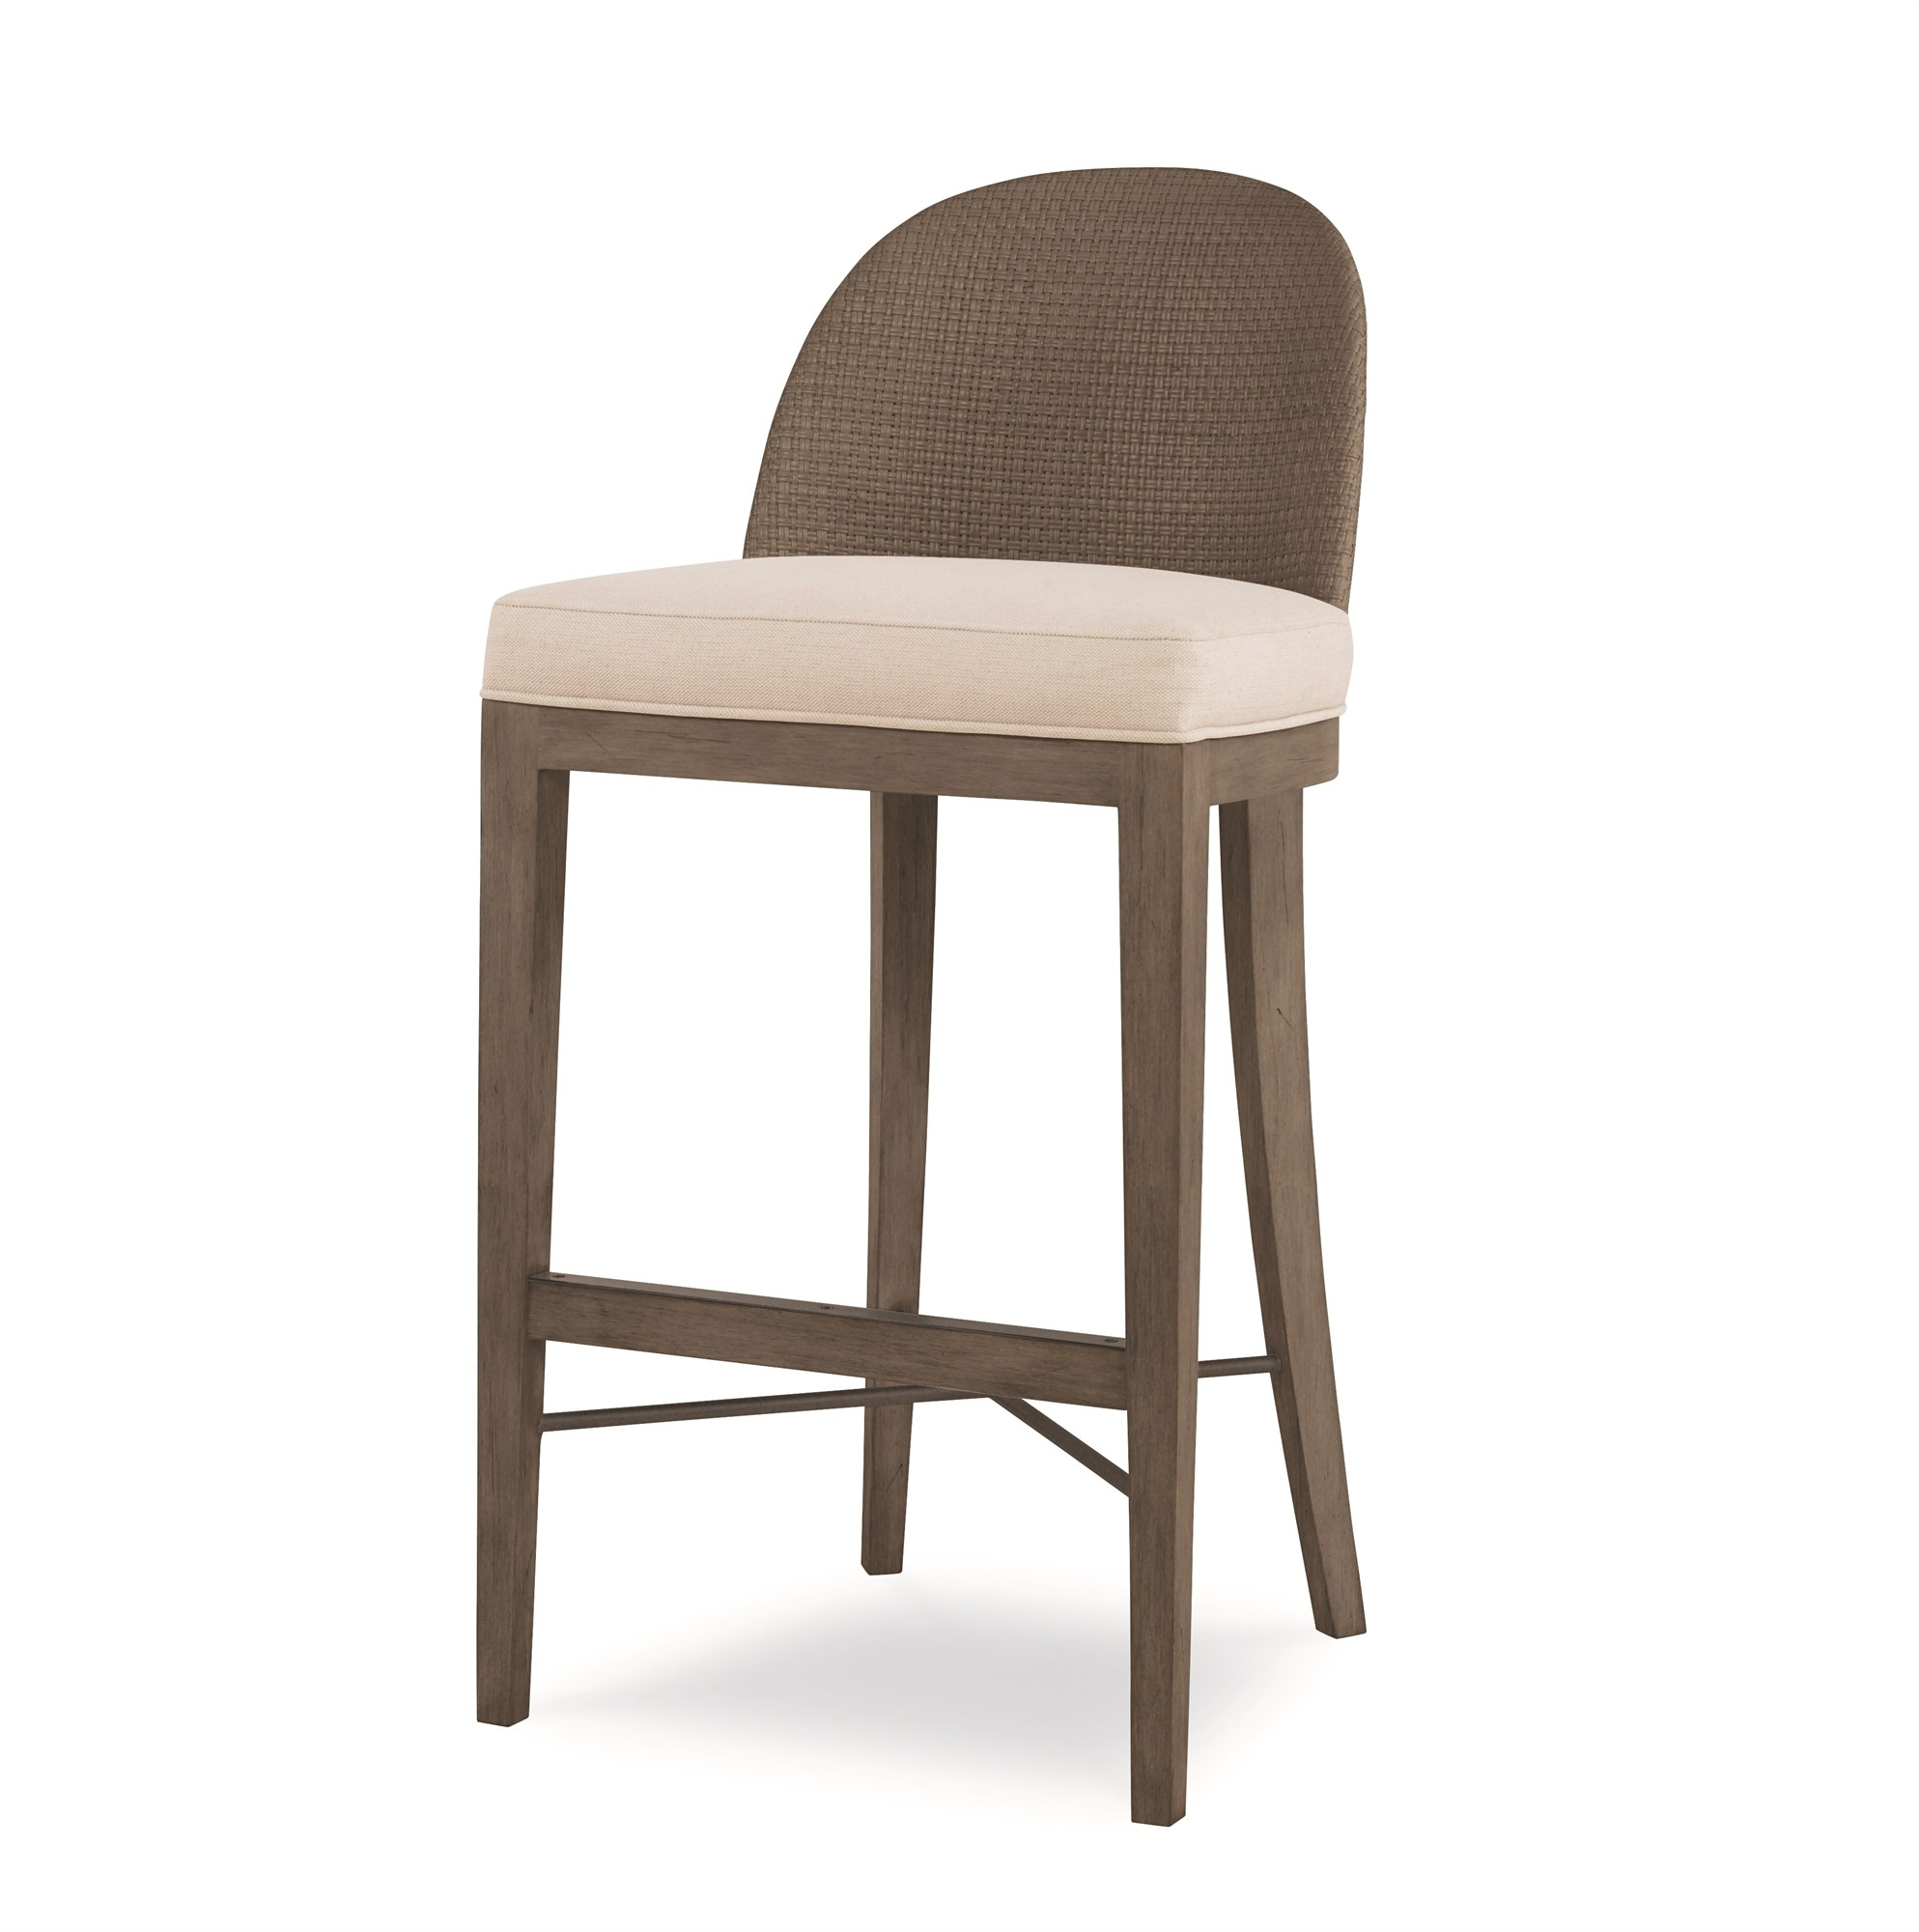 Tybee Bar Stool-Mink Grey/Flax (Lw-051-113-07)